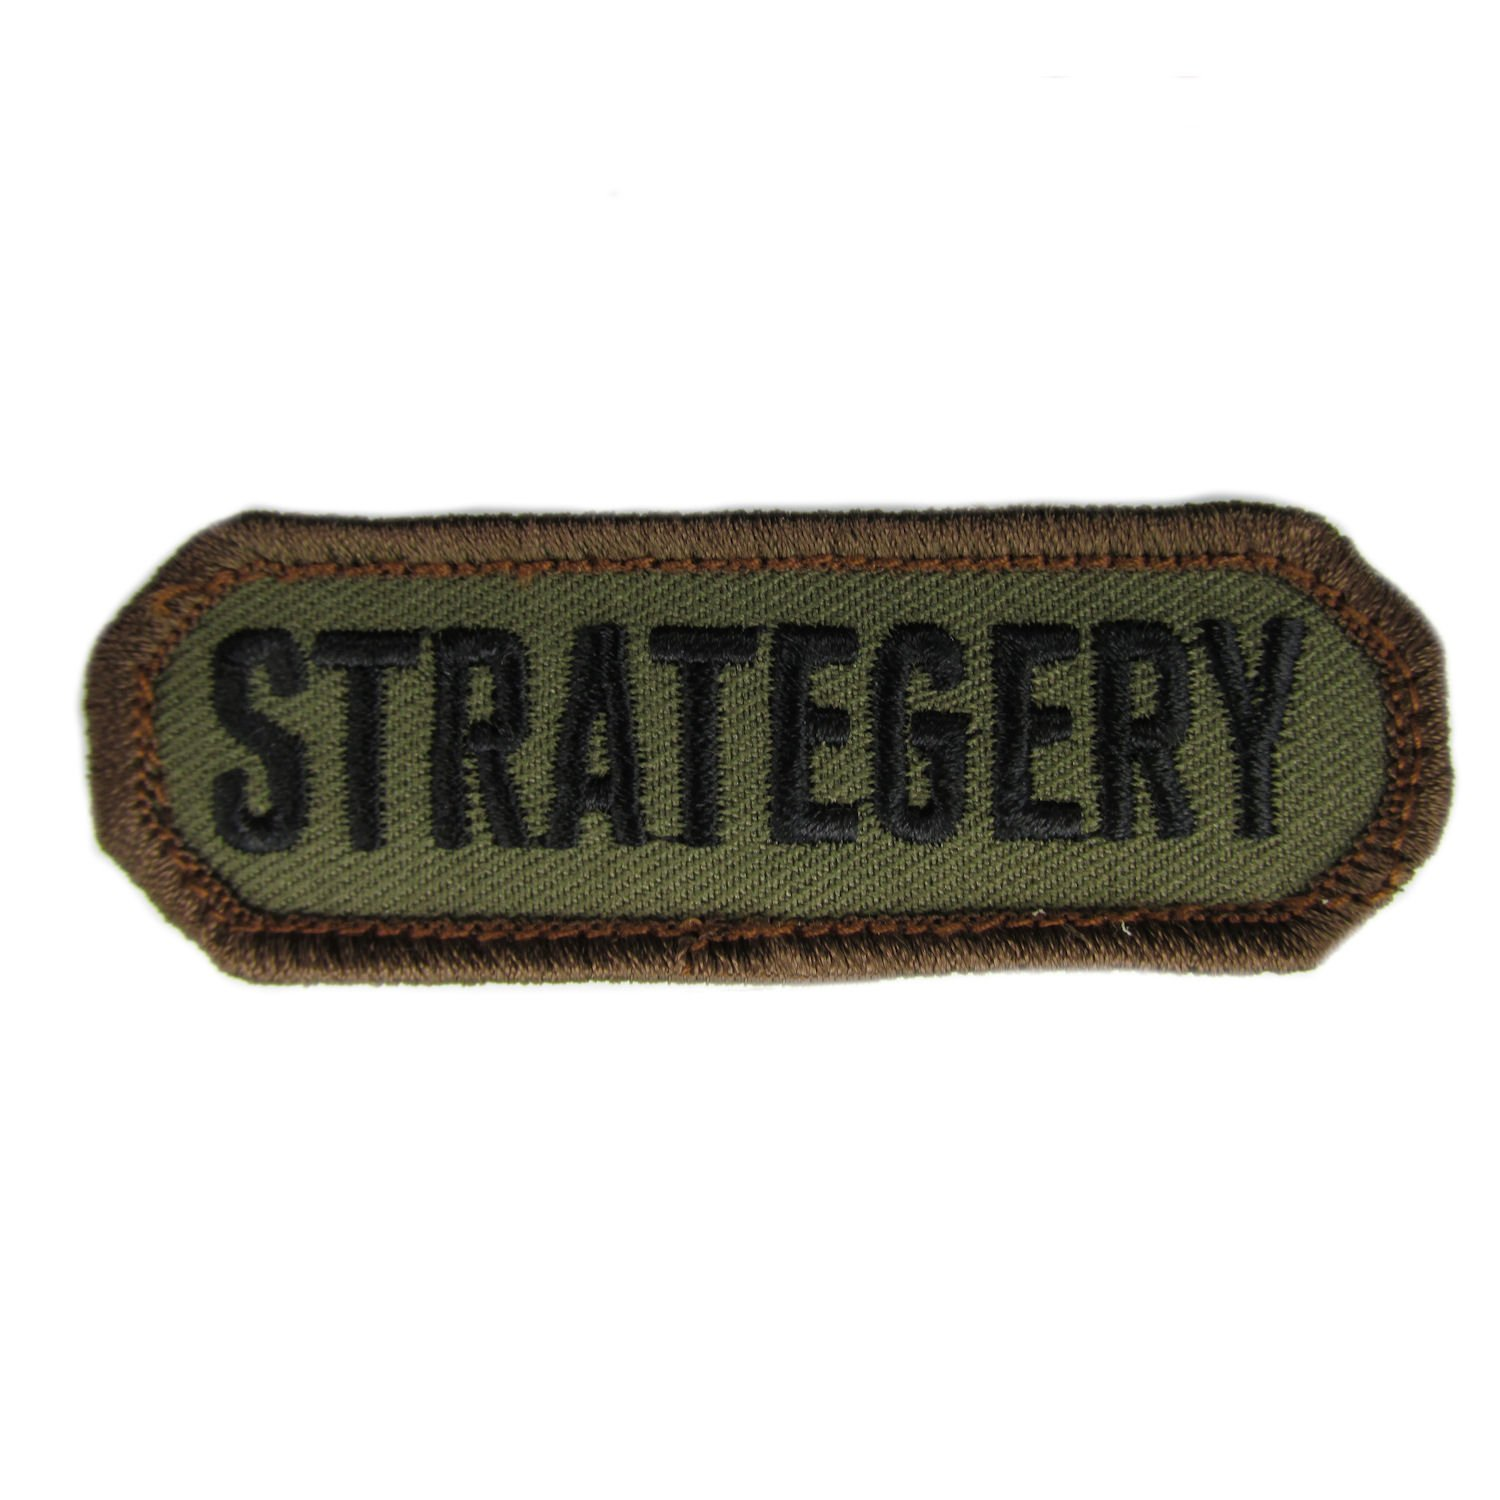 MIL-SPEC Strategery Patch Forest Mil-Spec Monkey